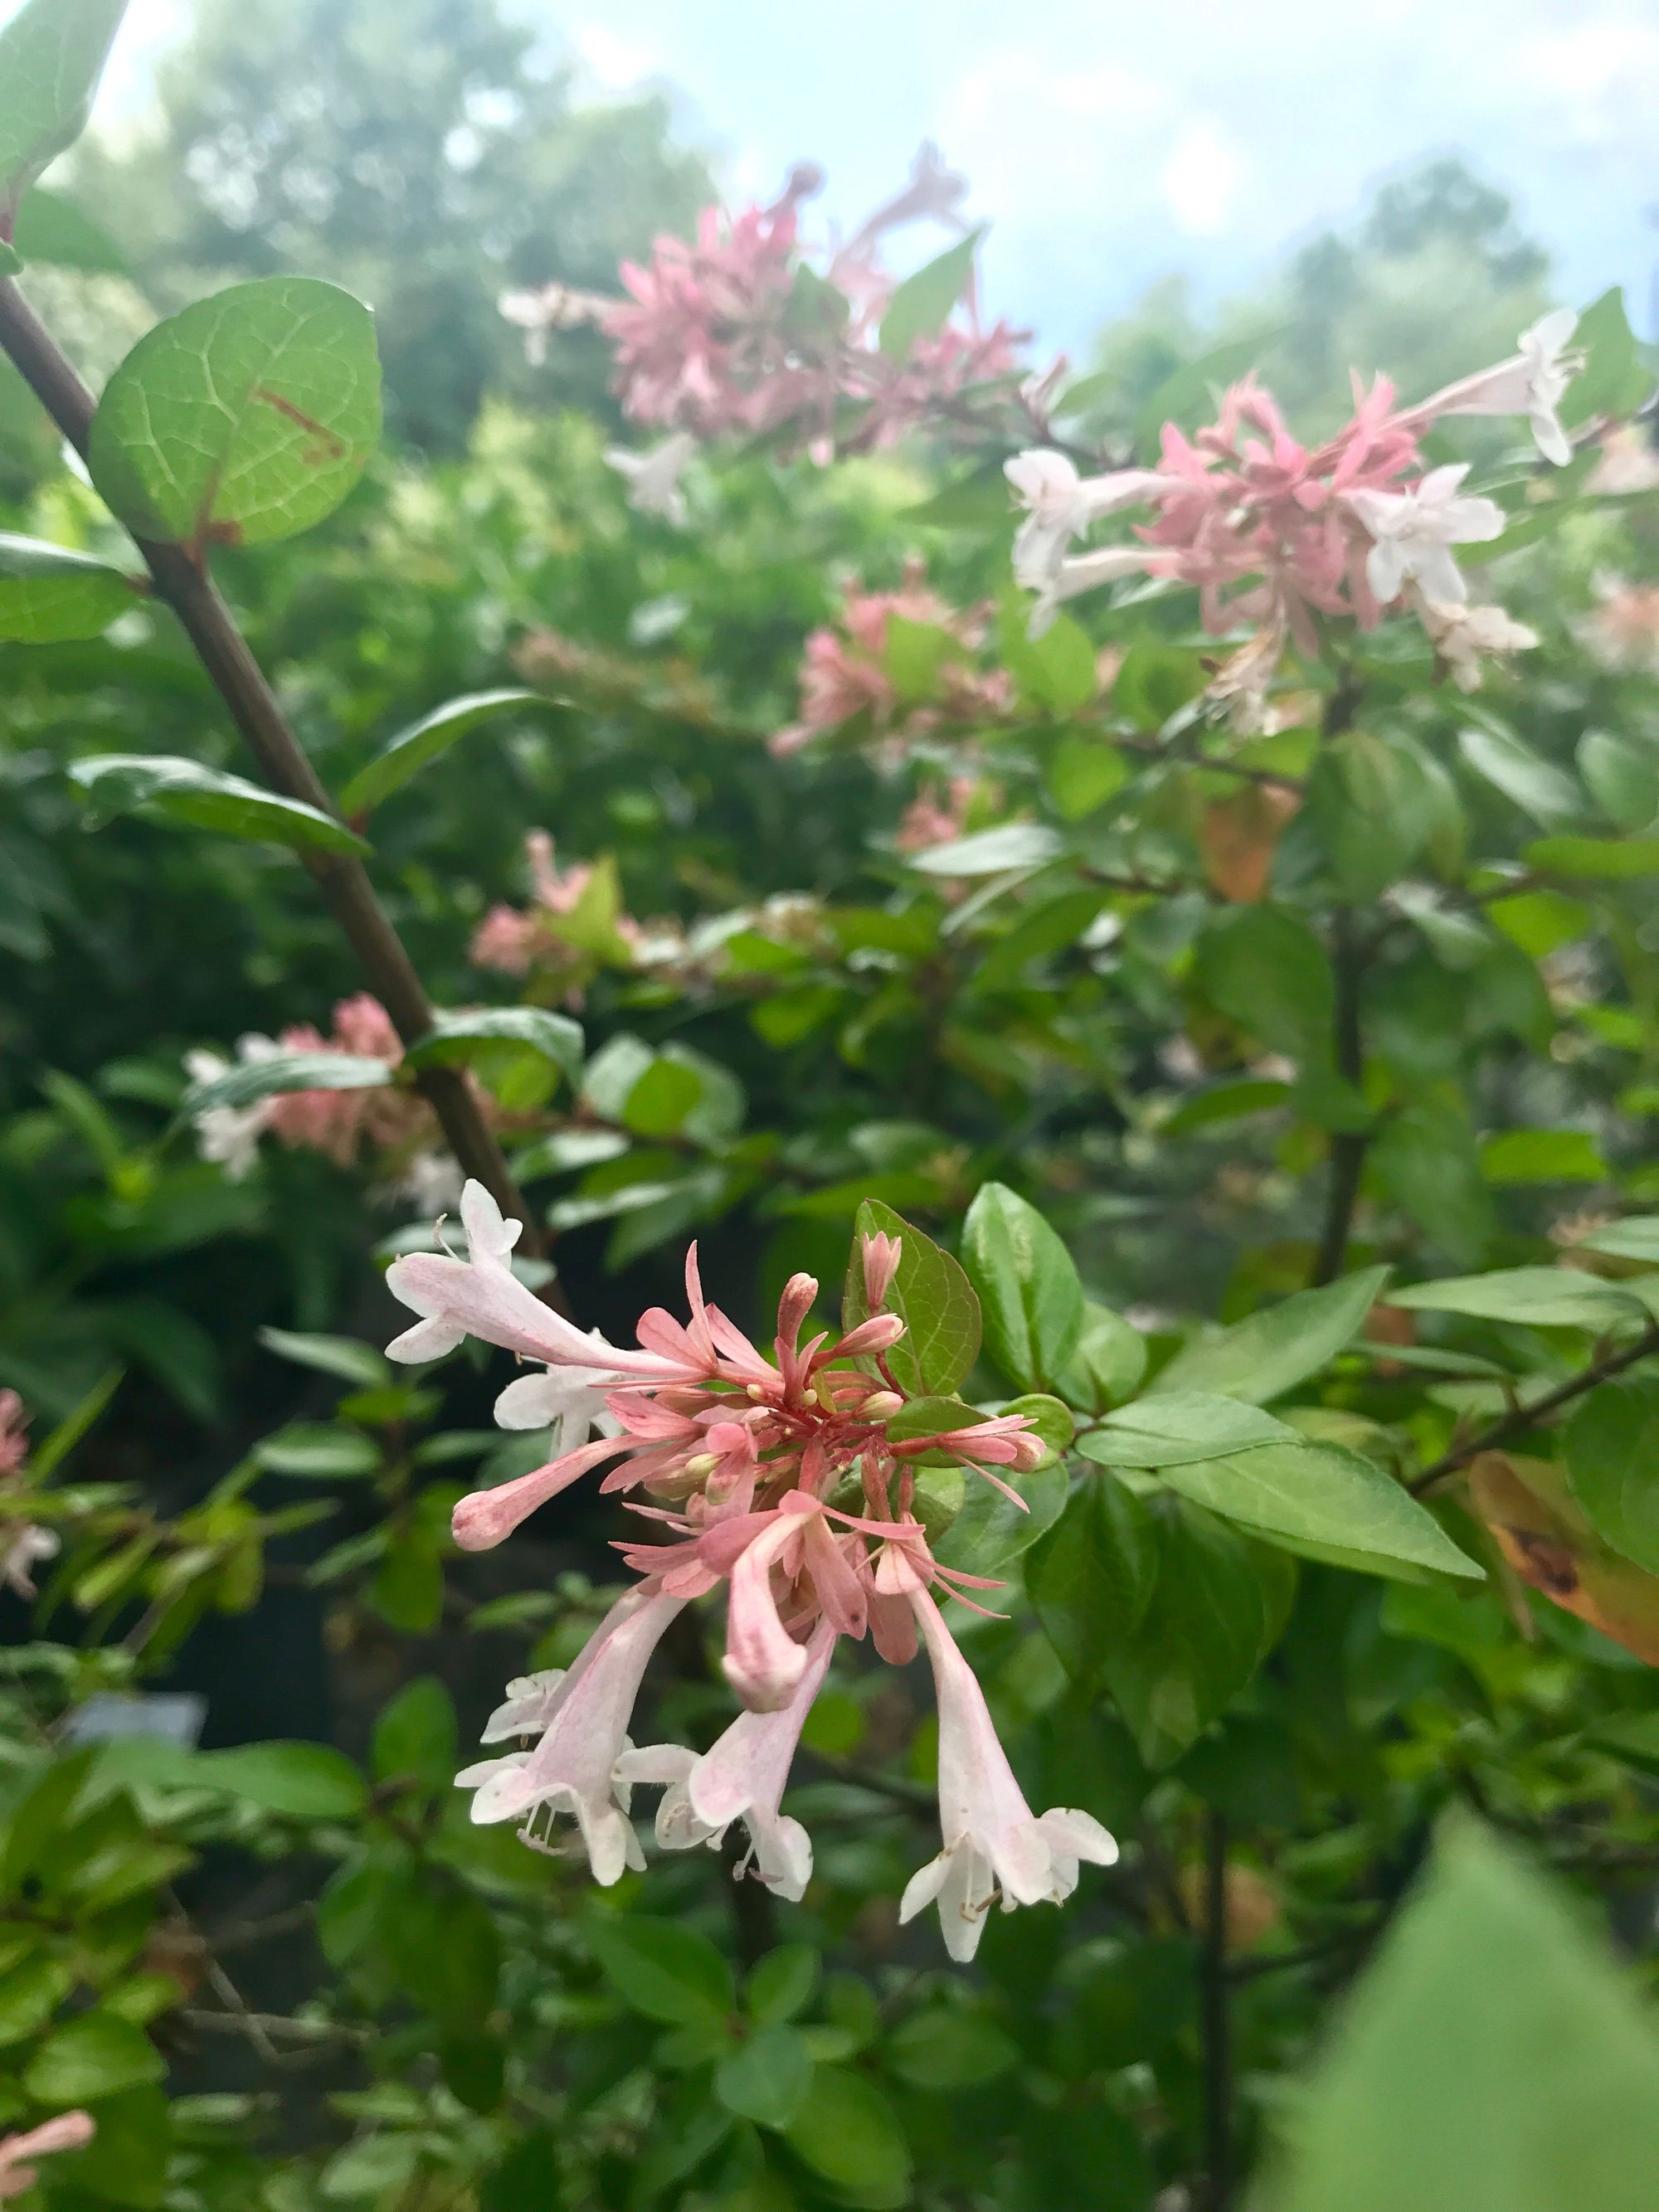 Abelia is a evergreen shrub with arching branches and a